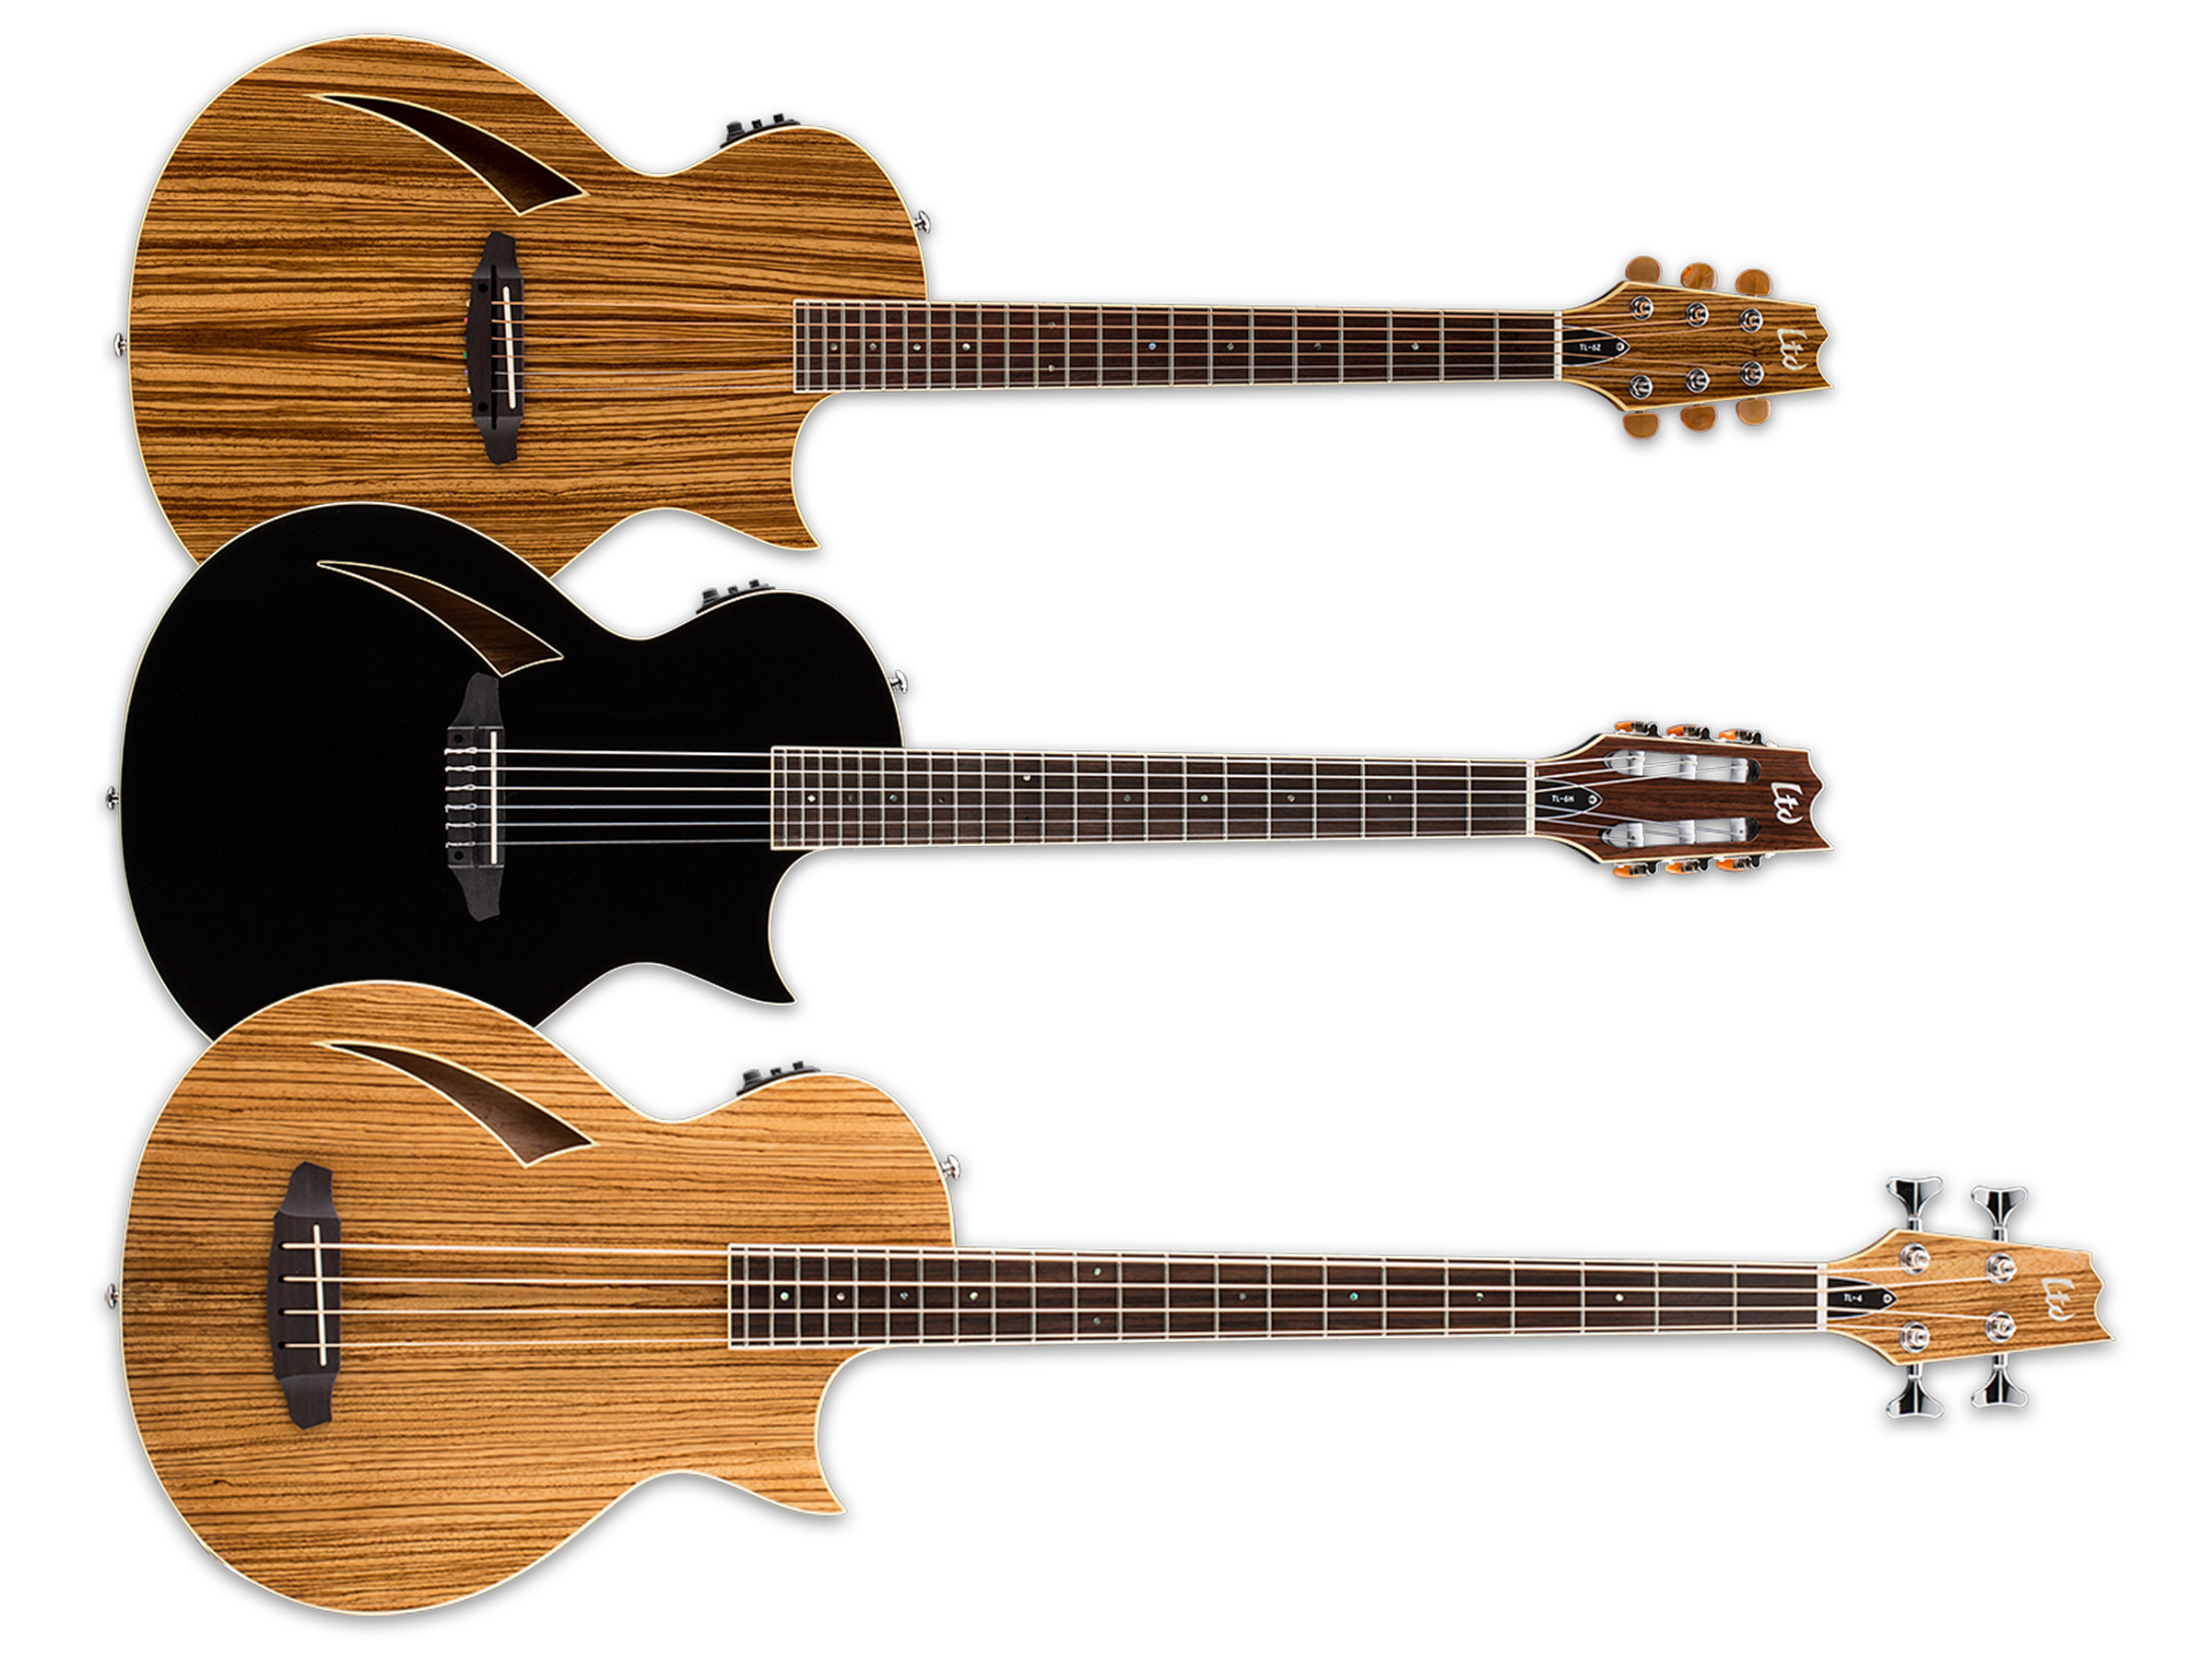 ltd kitarablogi finland s premier guitar and bass blog